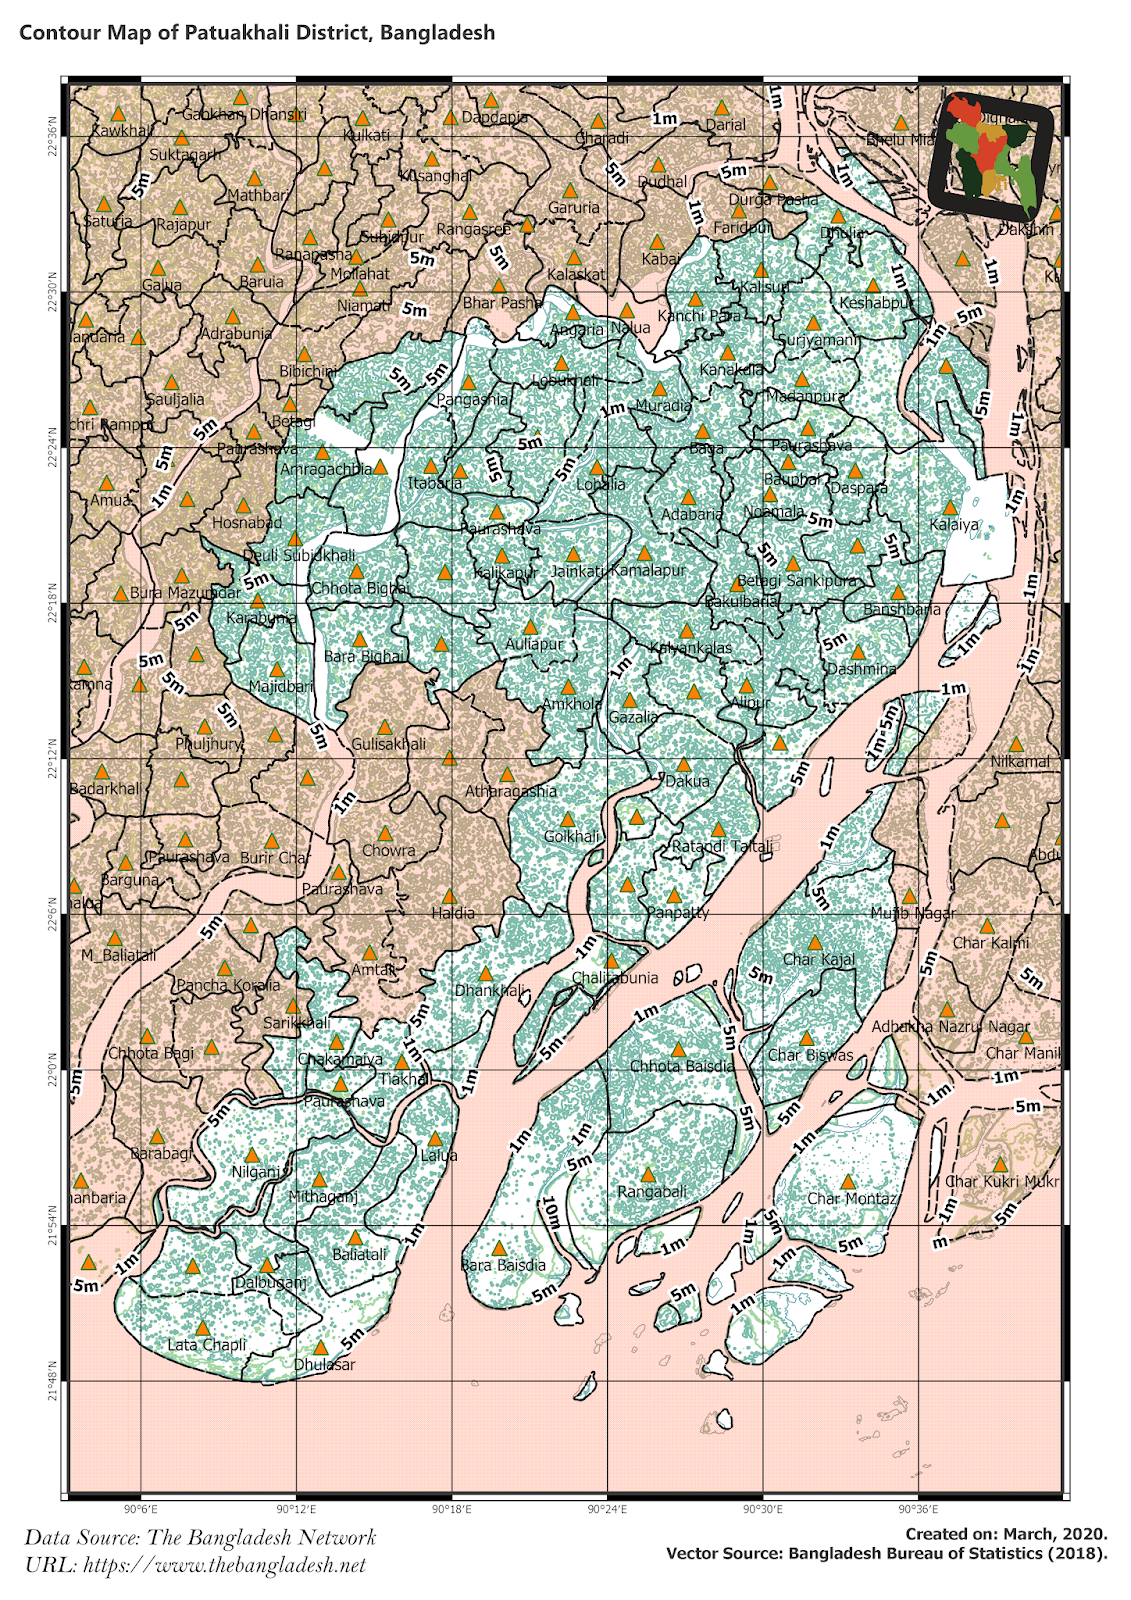 Elevation Map of Patuakhali District of Bangladesh